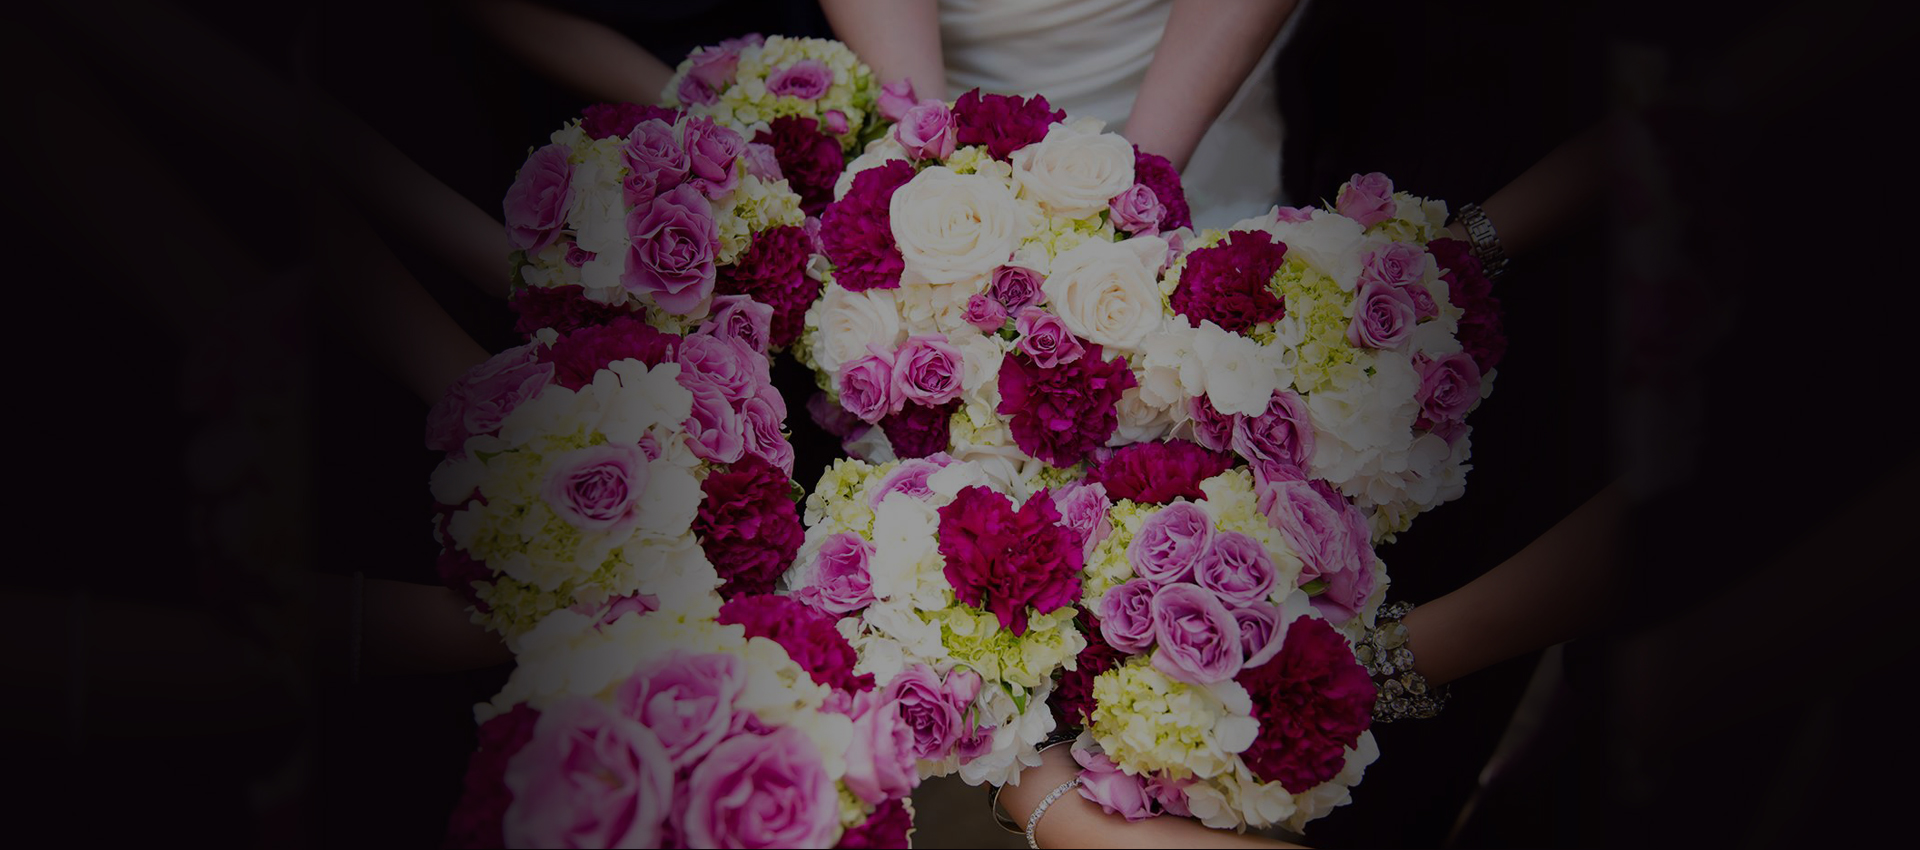 BREATHTAKING BOUQUETS